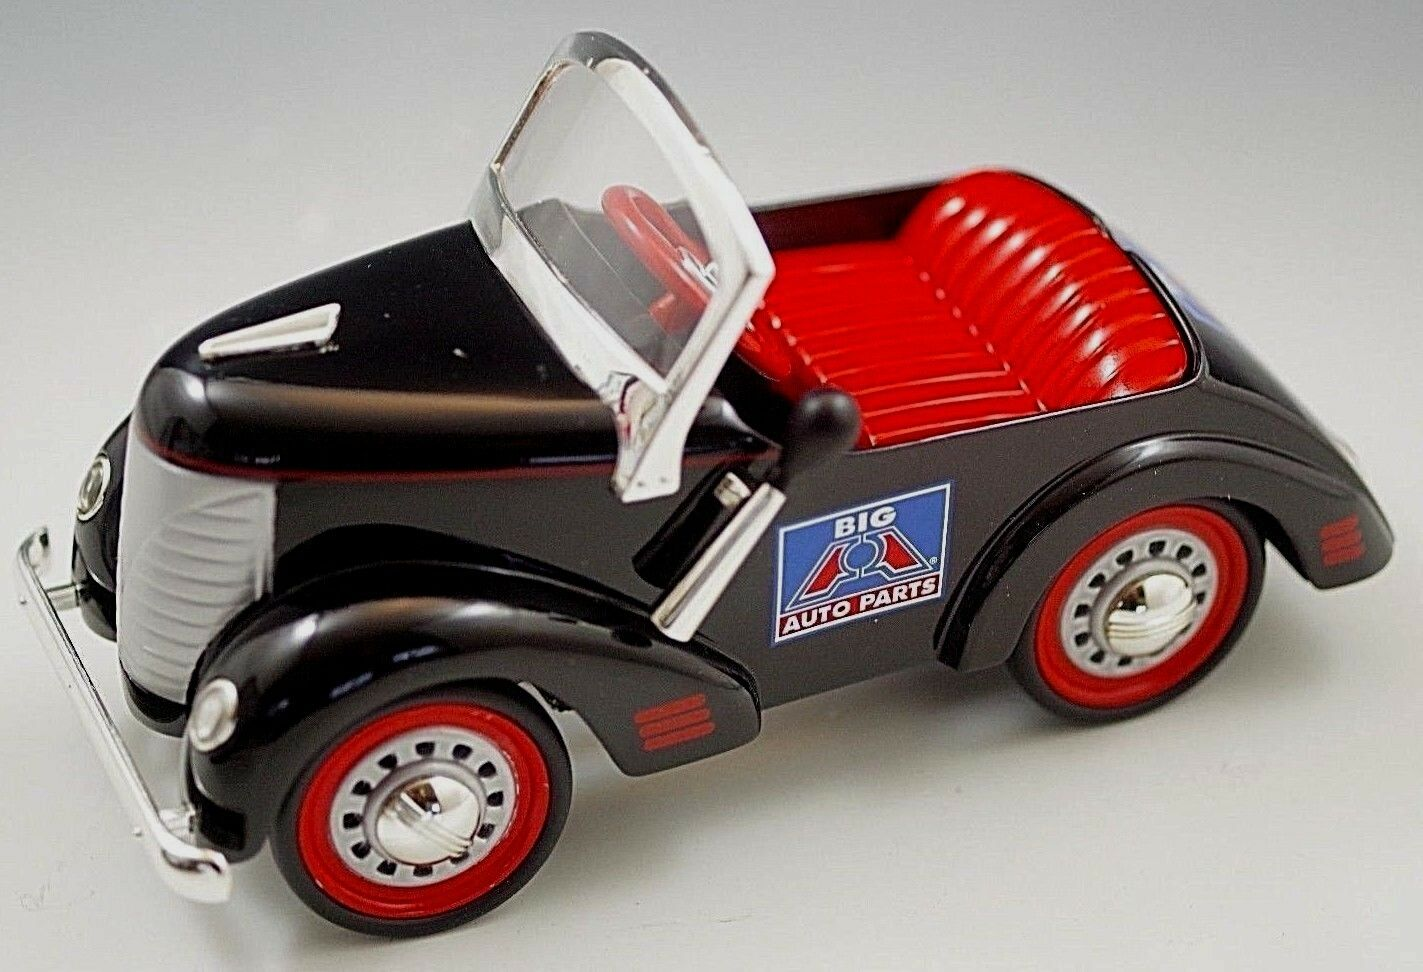 Big a Auto Parts Die Cast 1941 Garton Pedal Car Bank 1 6 Scale | eBay